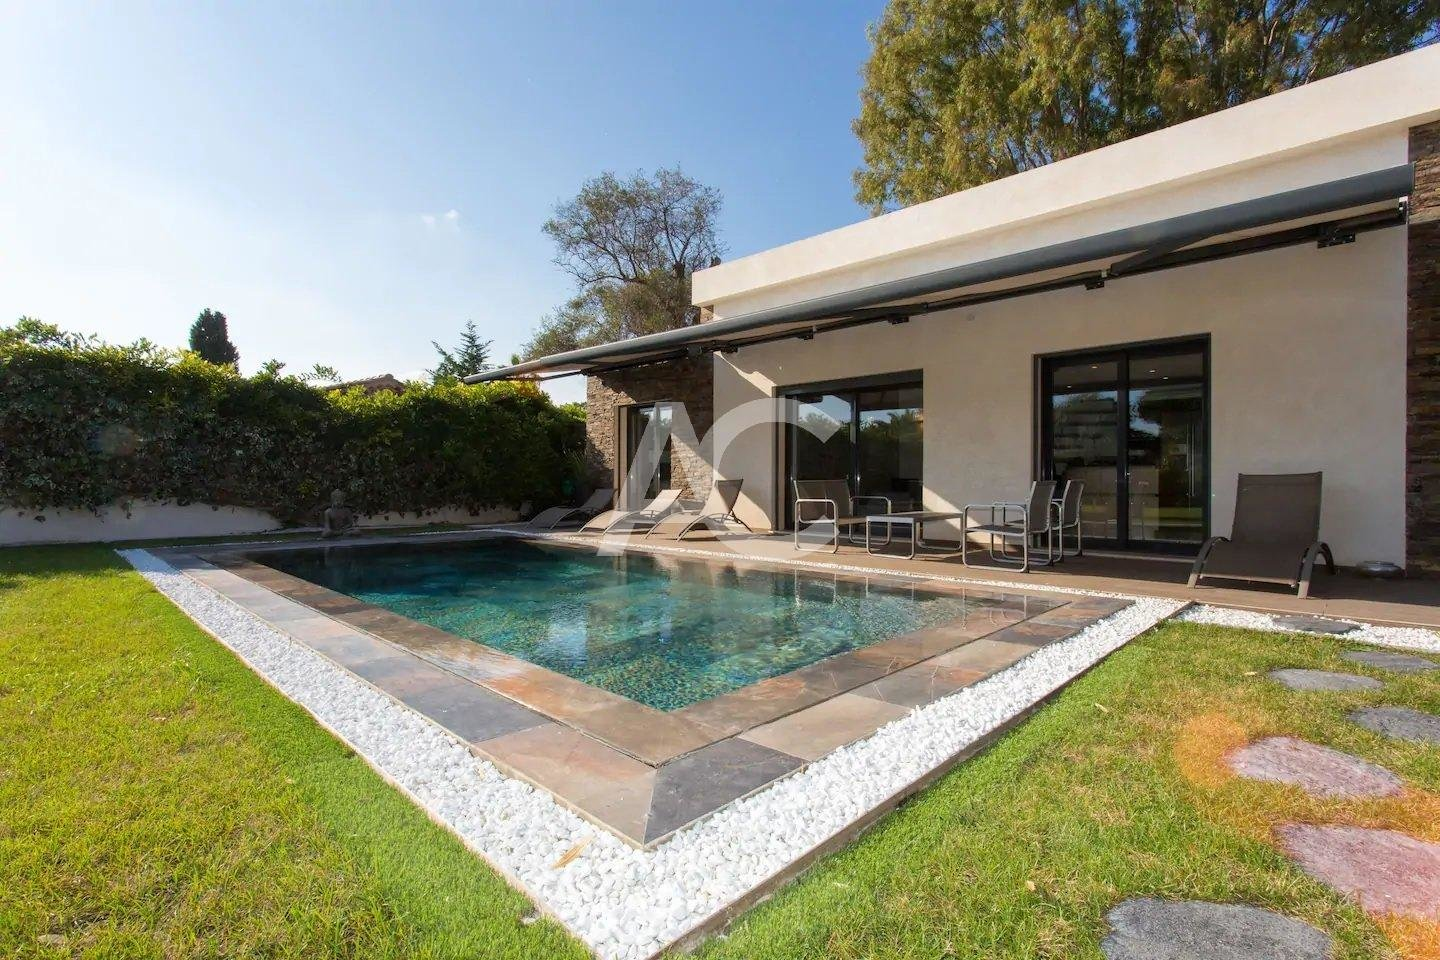 Renovated villa 100m from the beach - West side